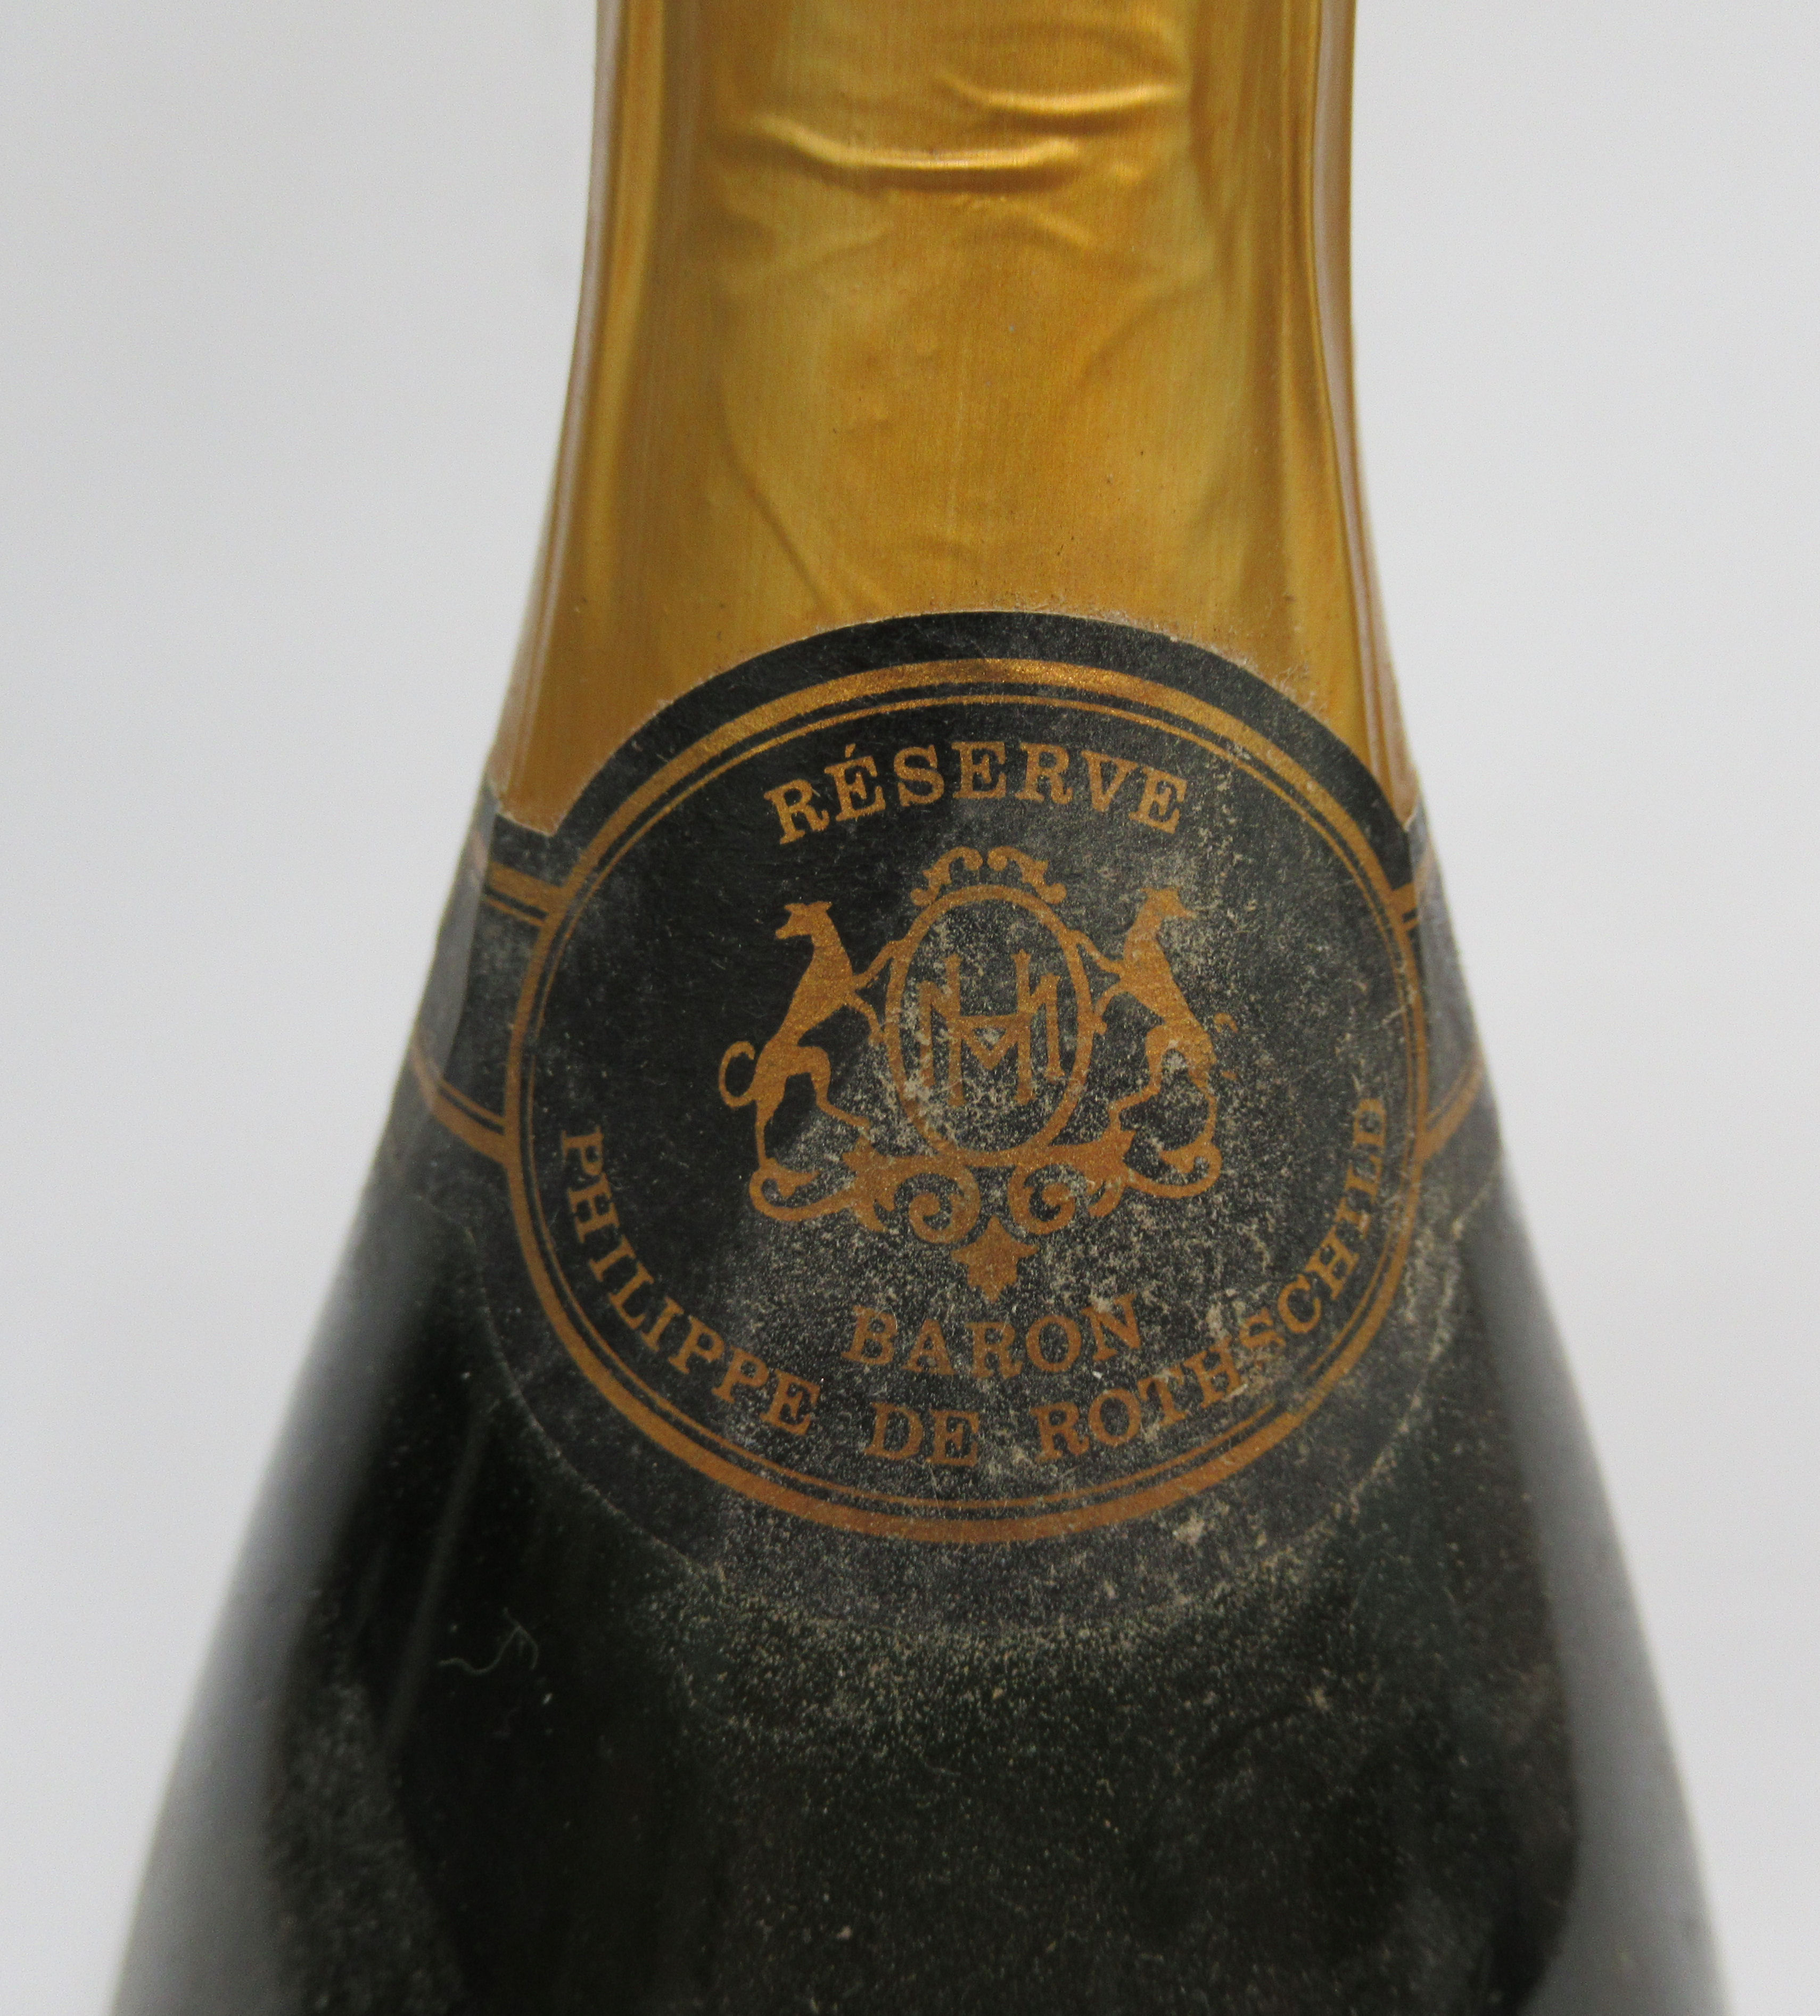 Wine, a bottle of 1973 Henriot Reserve Baron Philippe de Rothschild Champagne - Image 2 of 3